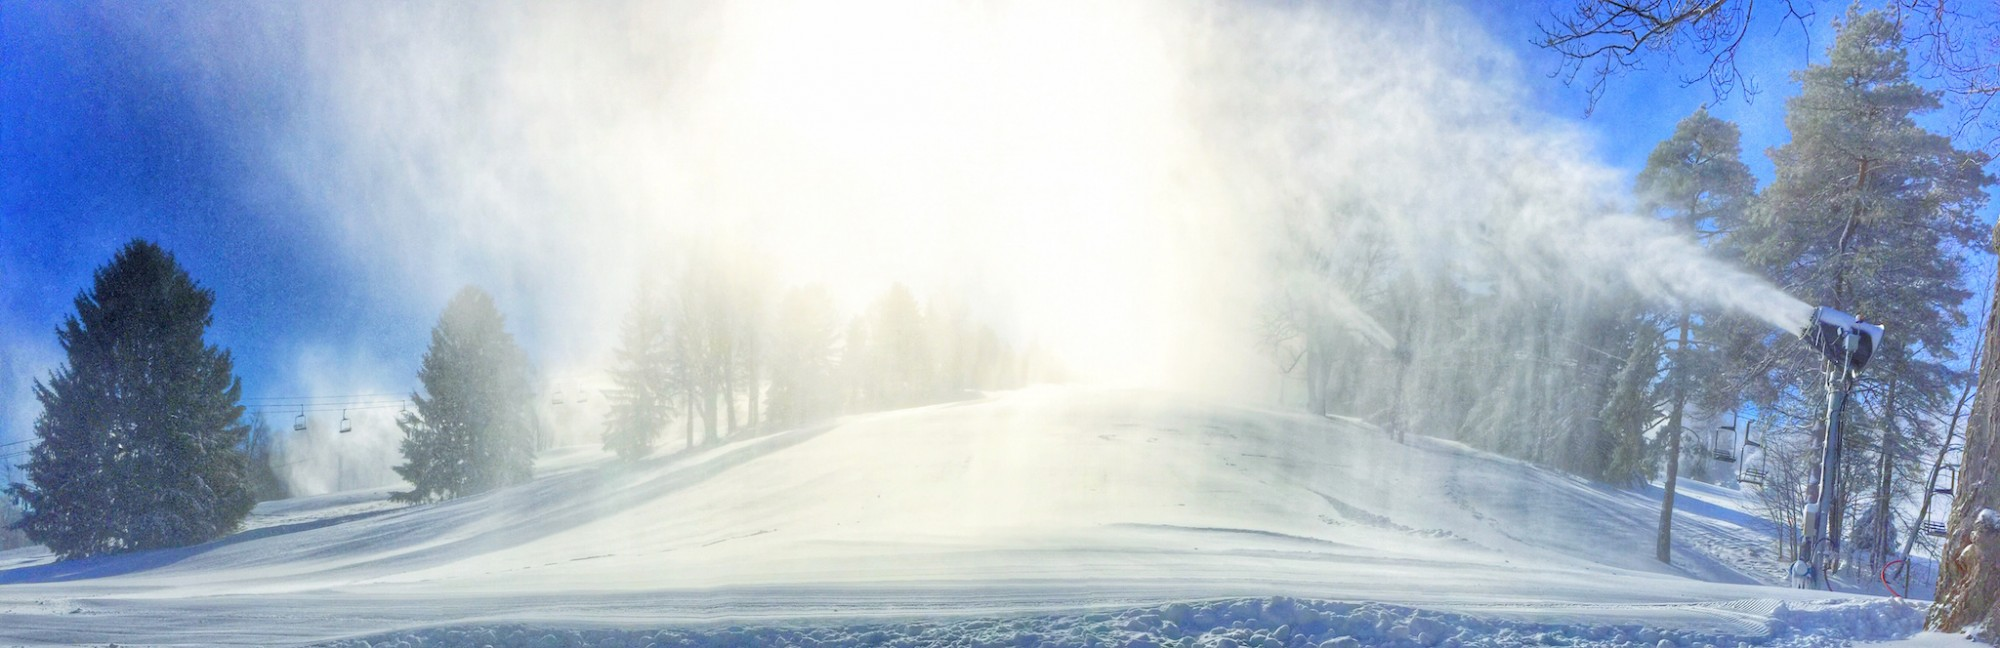 Snowmaking at Snow Trails Resort in Mansfield, Ohio